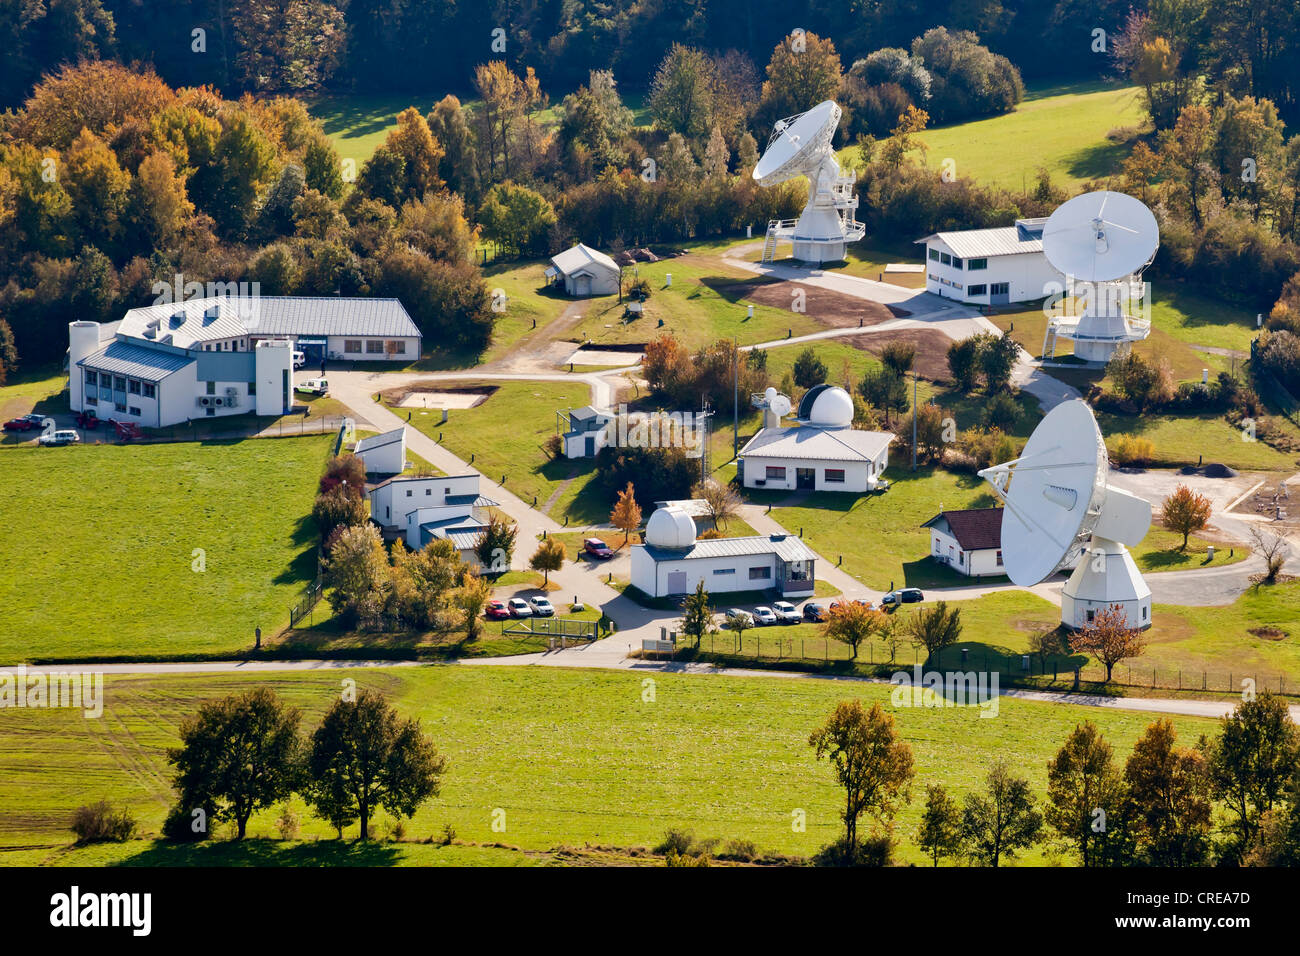 Aerial view of Fundamental Station Wettzell, geodetic observatory with radio telescopes, Wettzell near Bad Koetzting - Stock Image